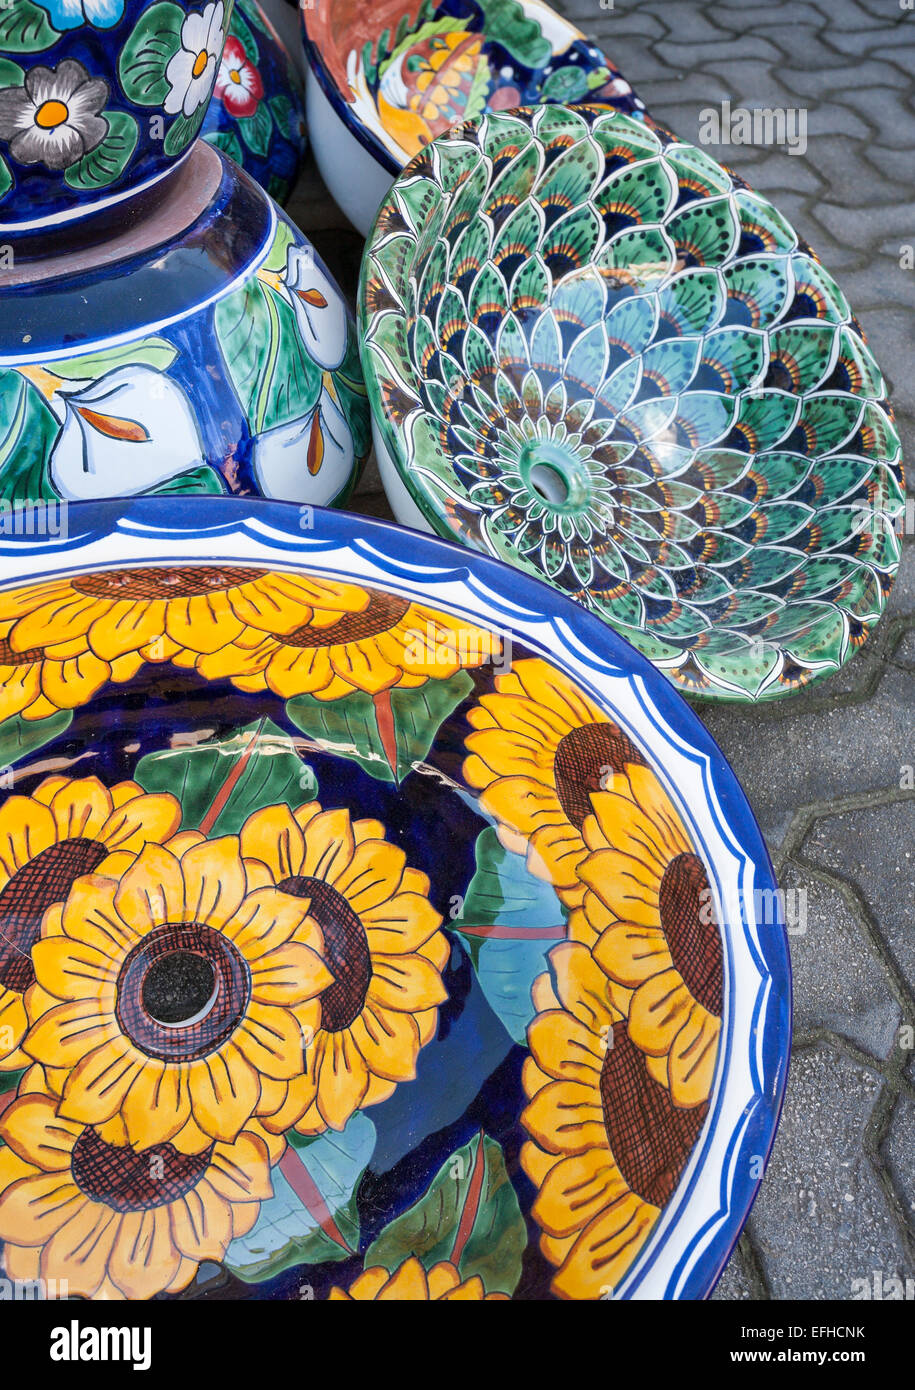 Colourful Pottery Sinks. For sale in a sidewalk market in Tulum Peublo. - Stock Image